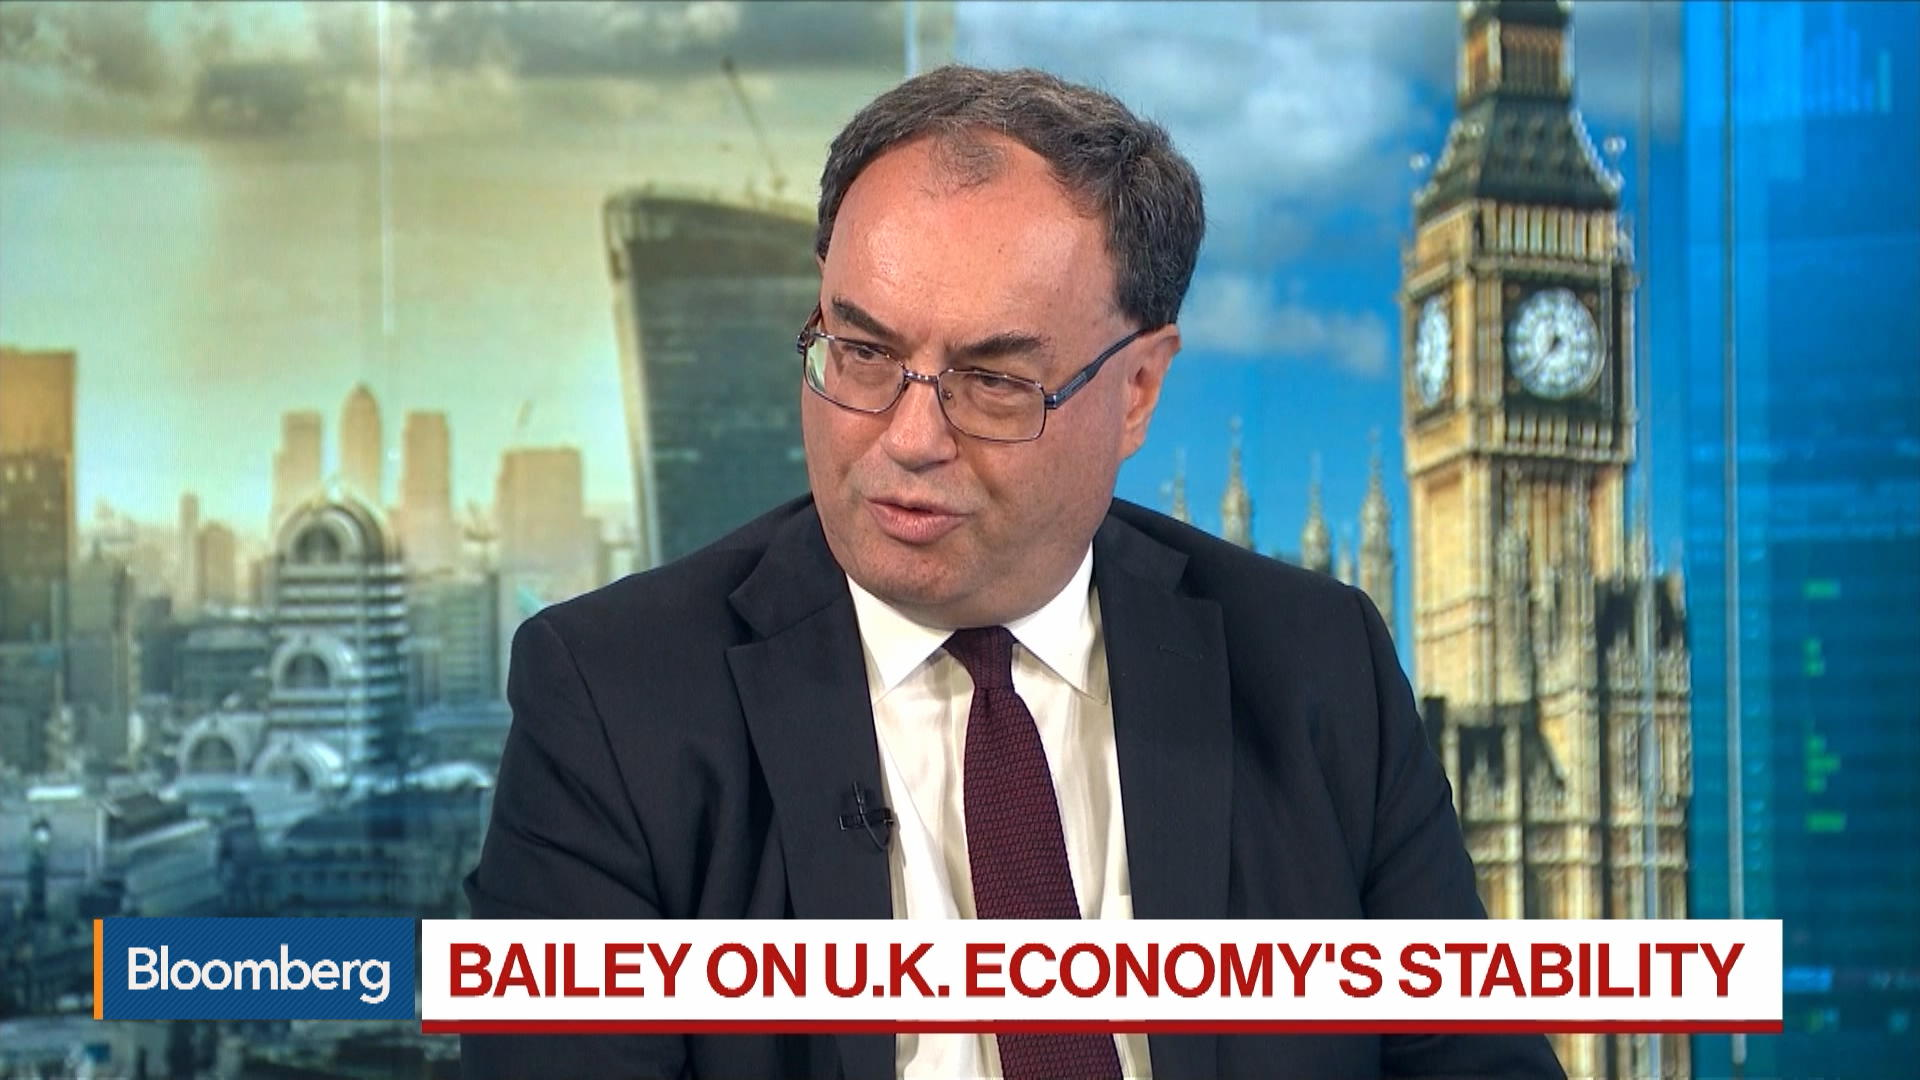 Financial Conduct Authority CEO Andrew Bailey on HKEX-LSE, Post-Brexit Financial Regulation